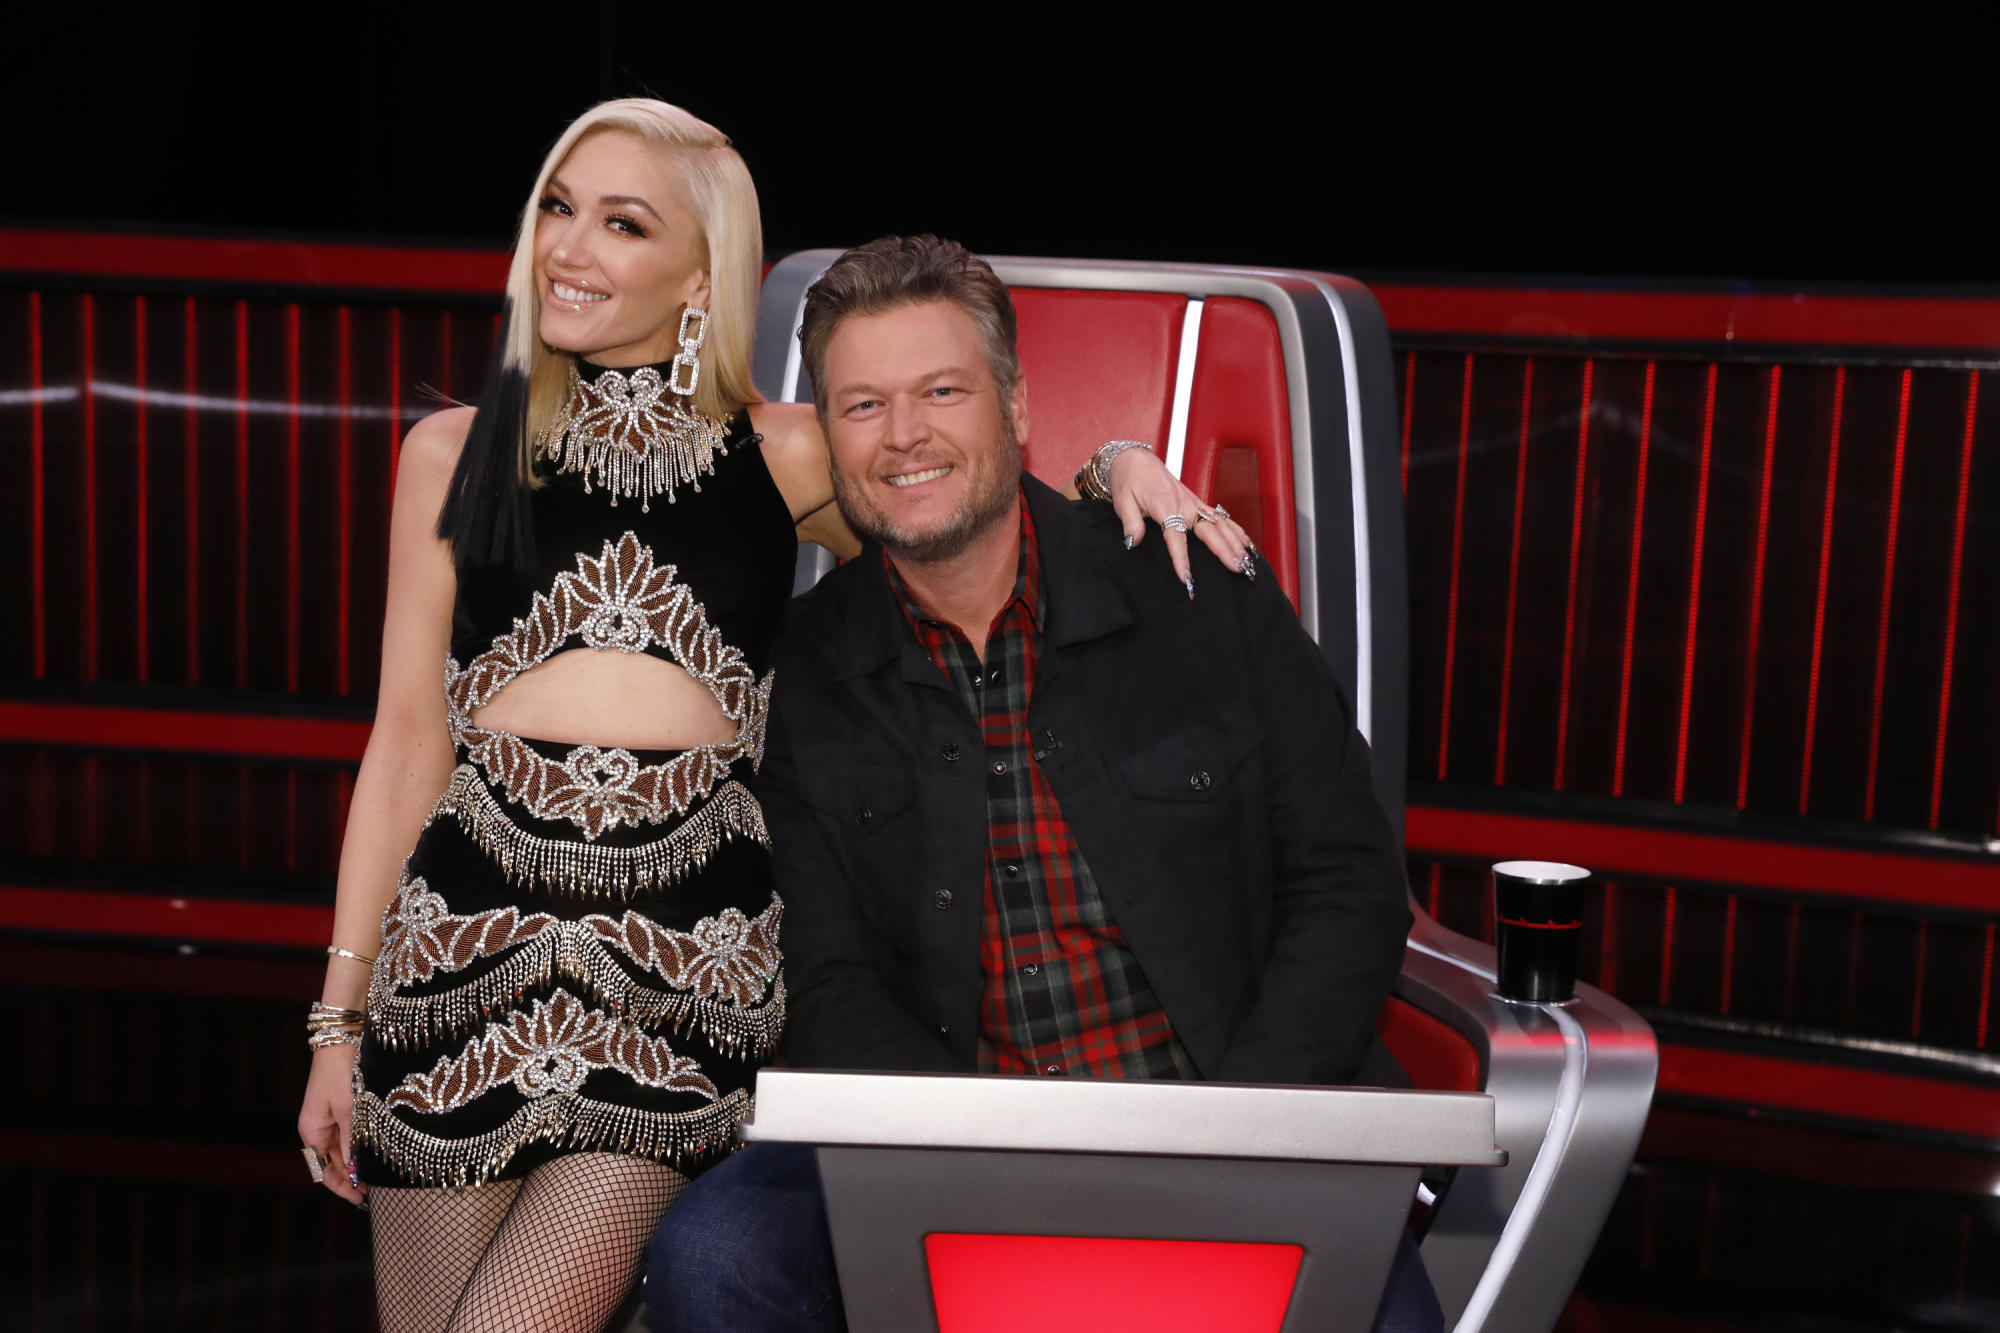 Blake Shelton tries to win over 'Voice' contestant with Gwen Stefani wedding and pregnancy jokes: 'She's delivering twins right now!'